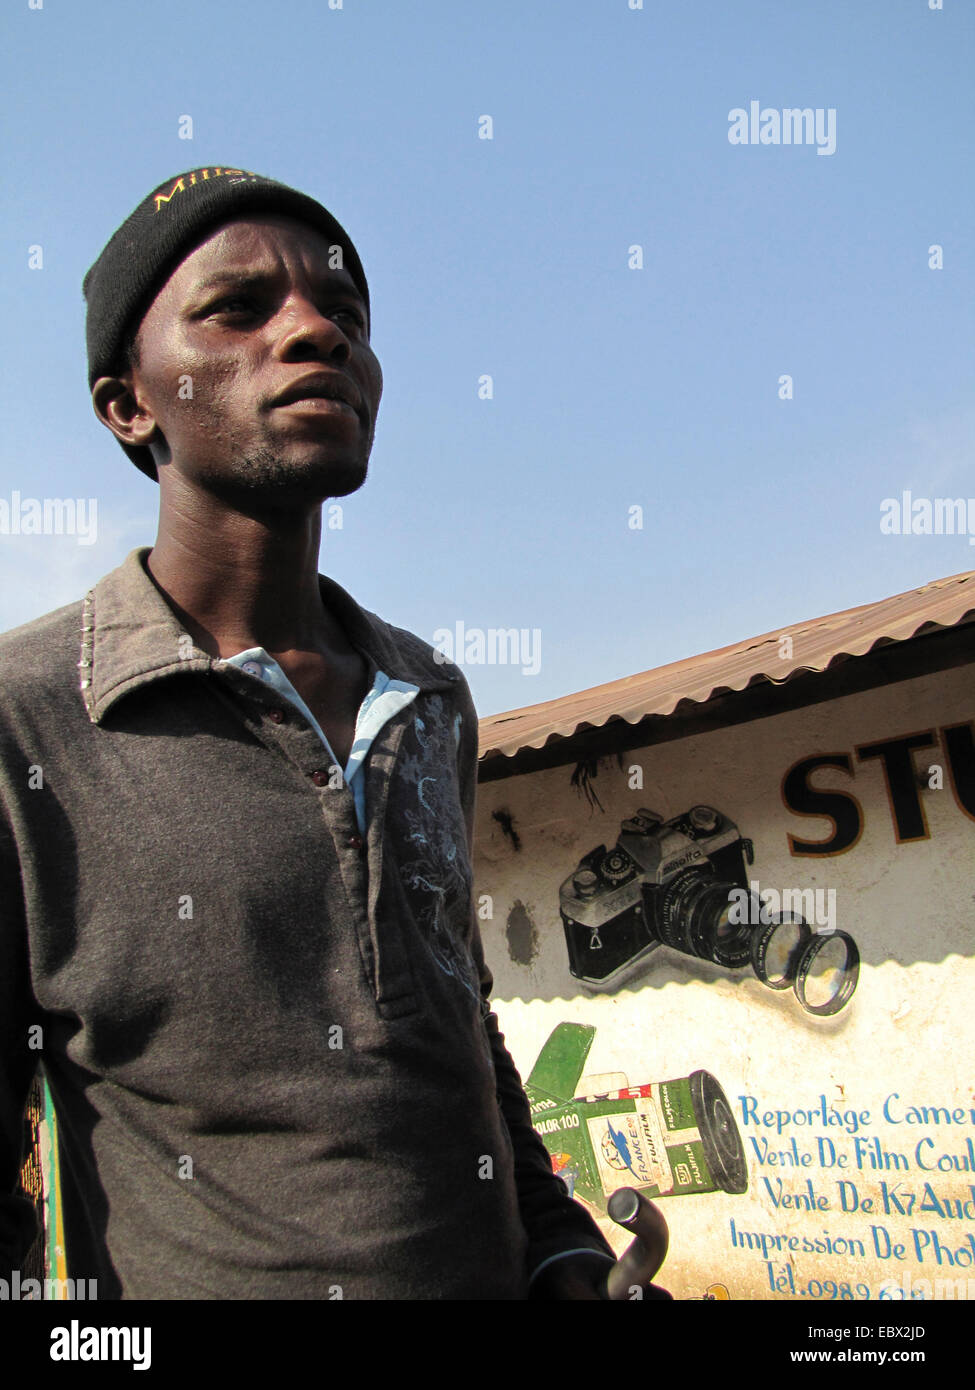 young man with cap in front of photo studio, Burundi, Bujumbura marie, Bwiza, Bujumbura - Stock Image